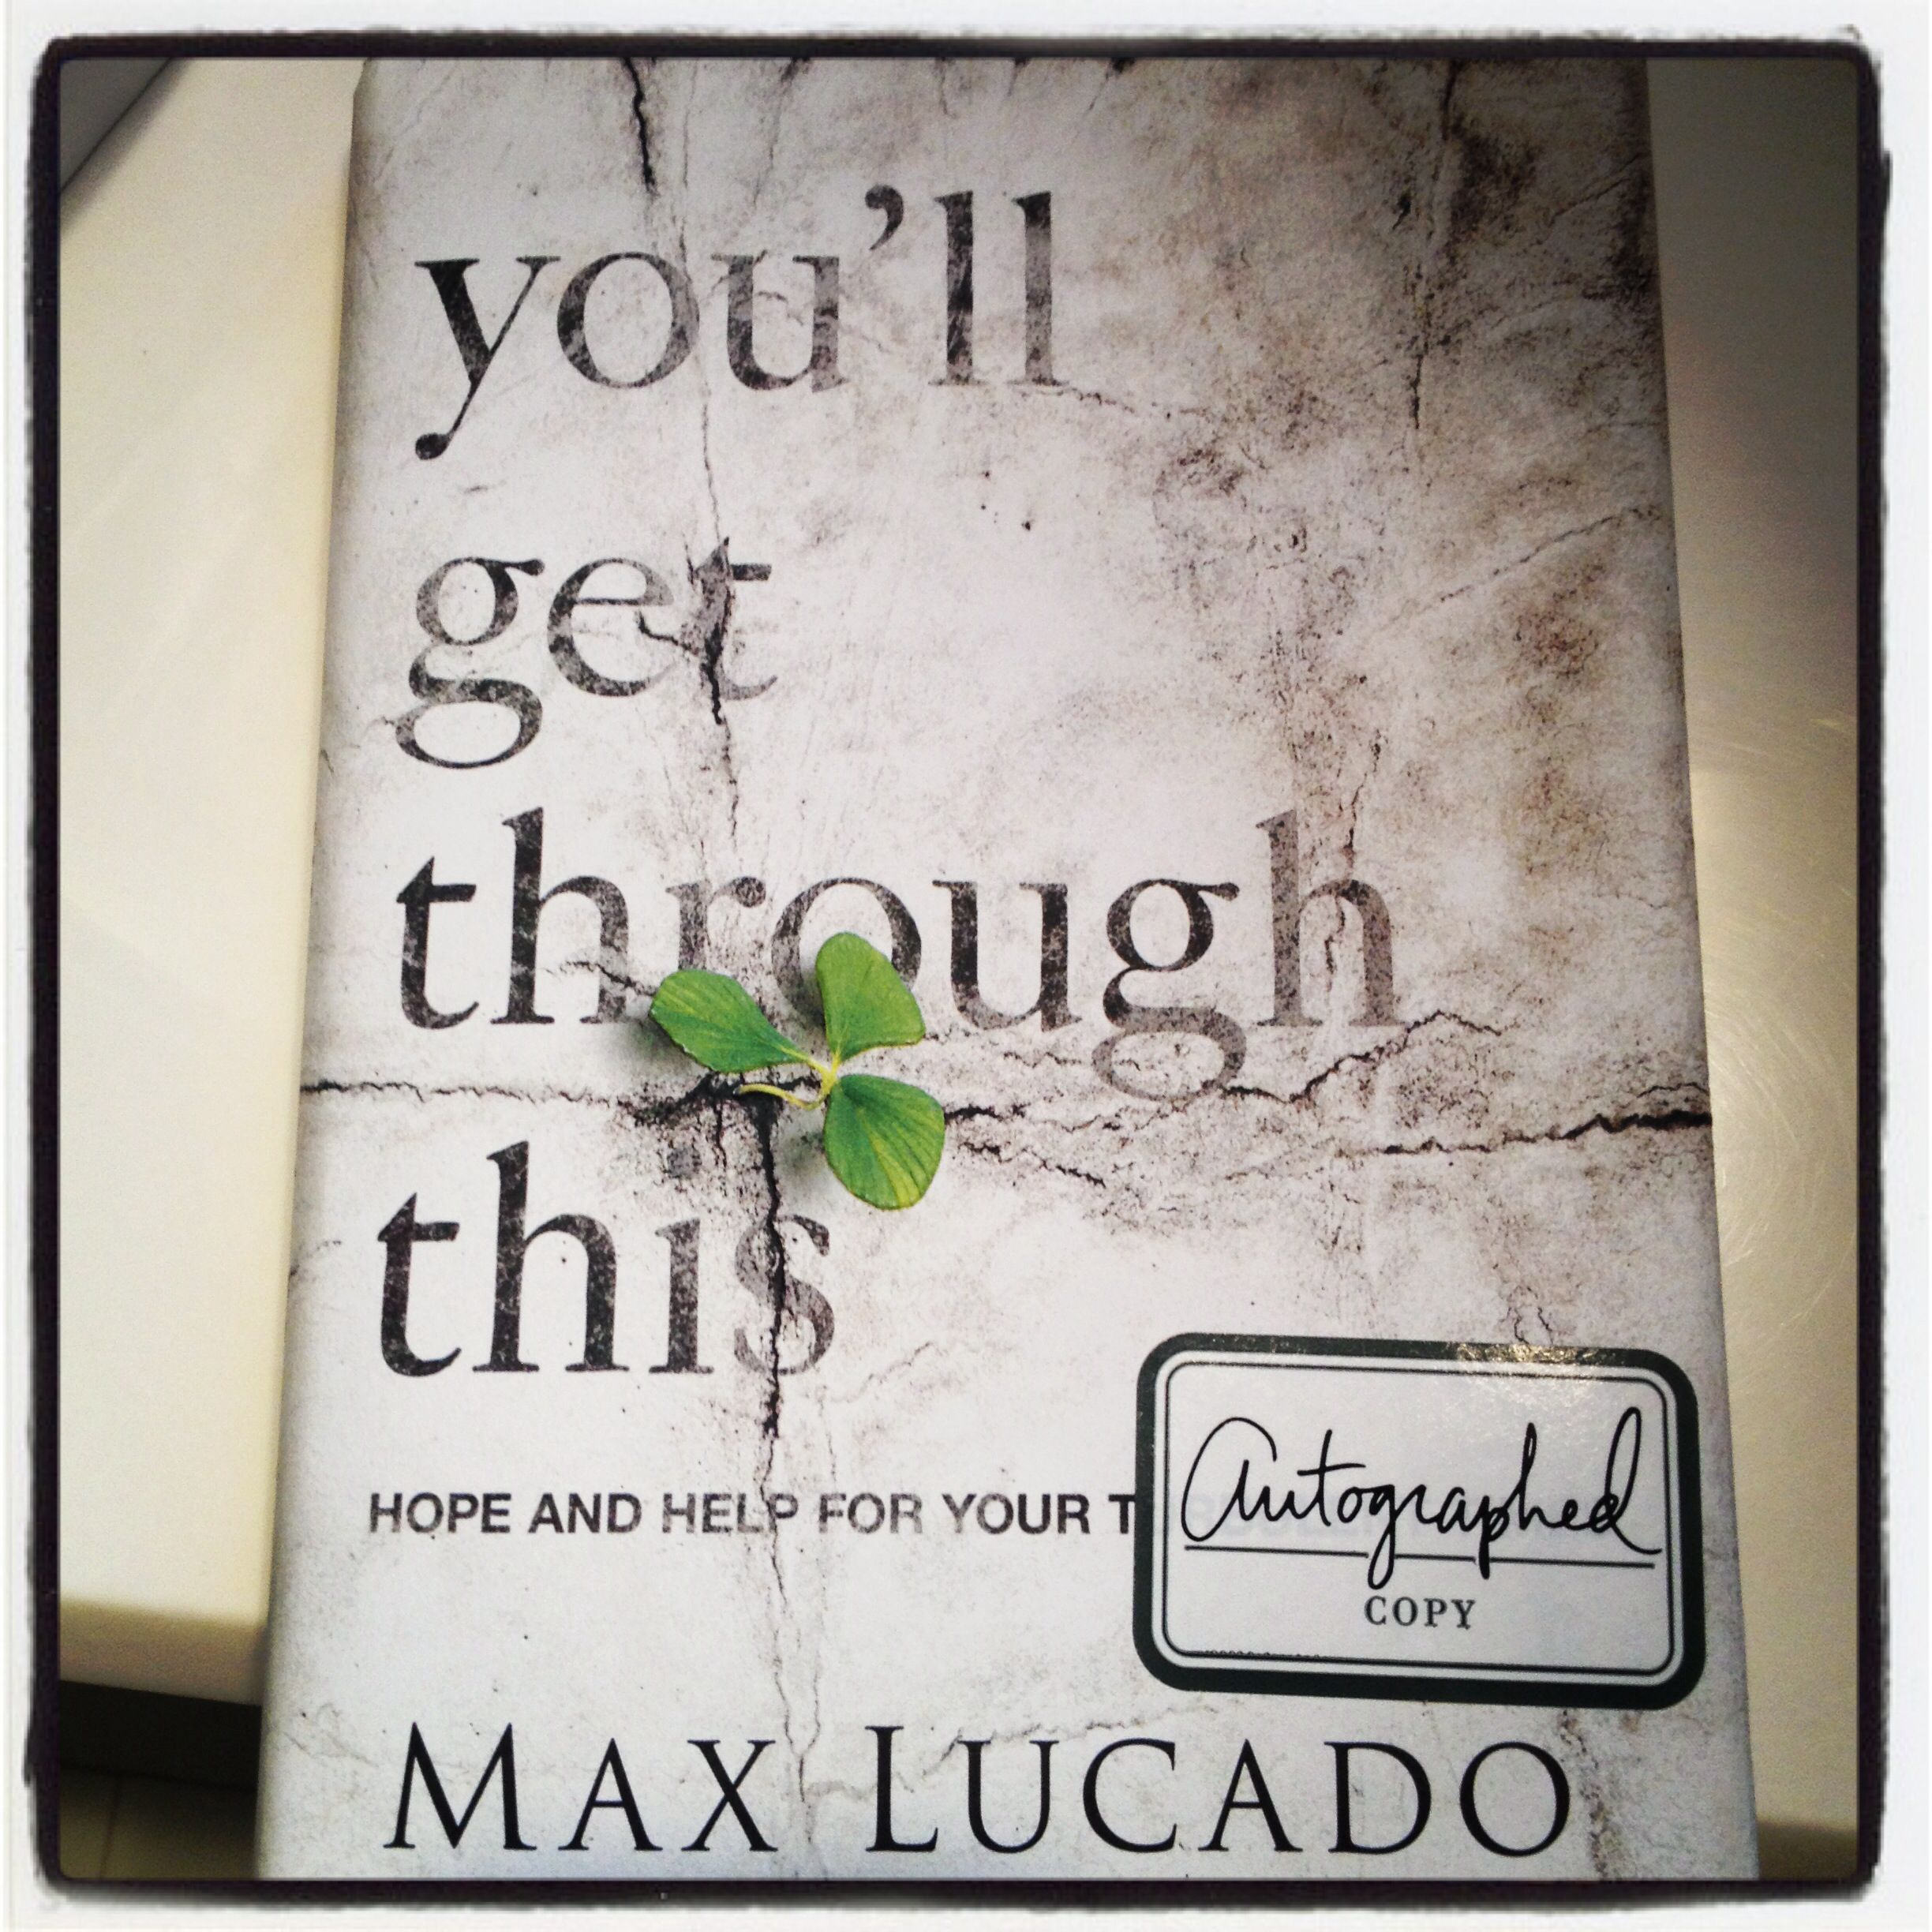 This is a phenomenal book for anyone who needs hope in their lives.